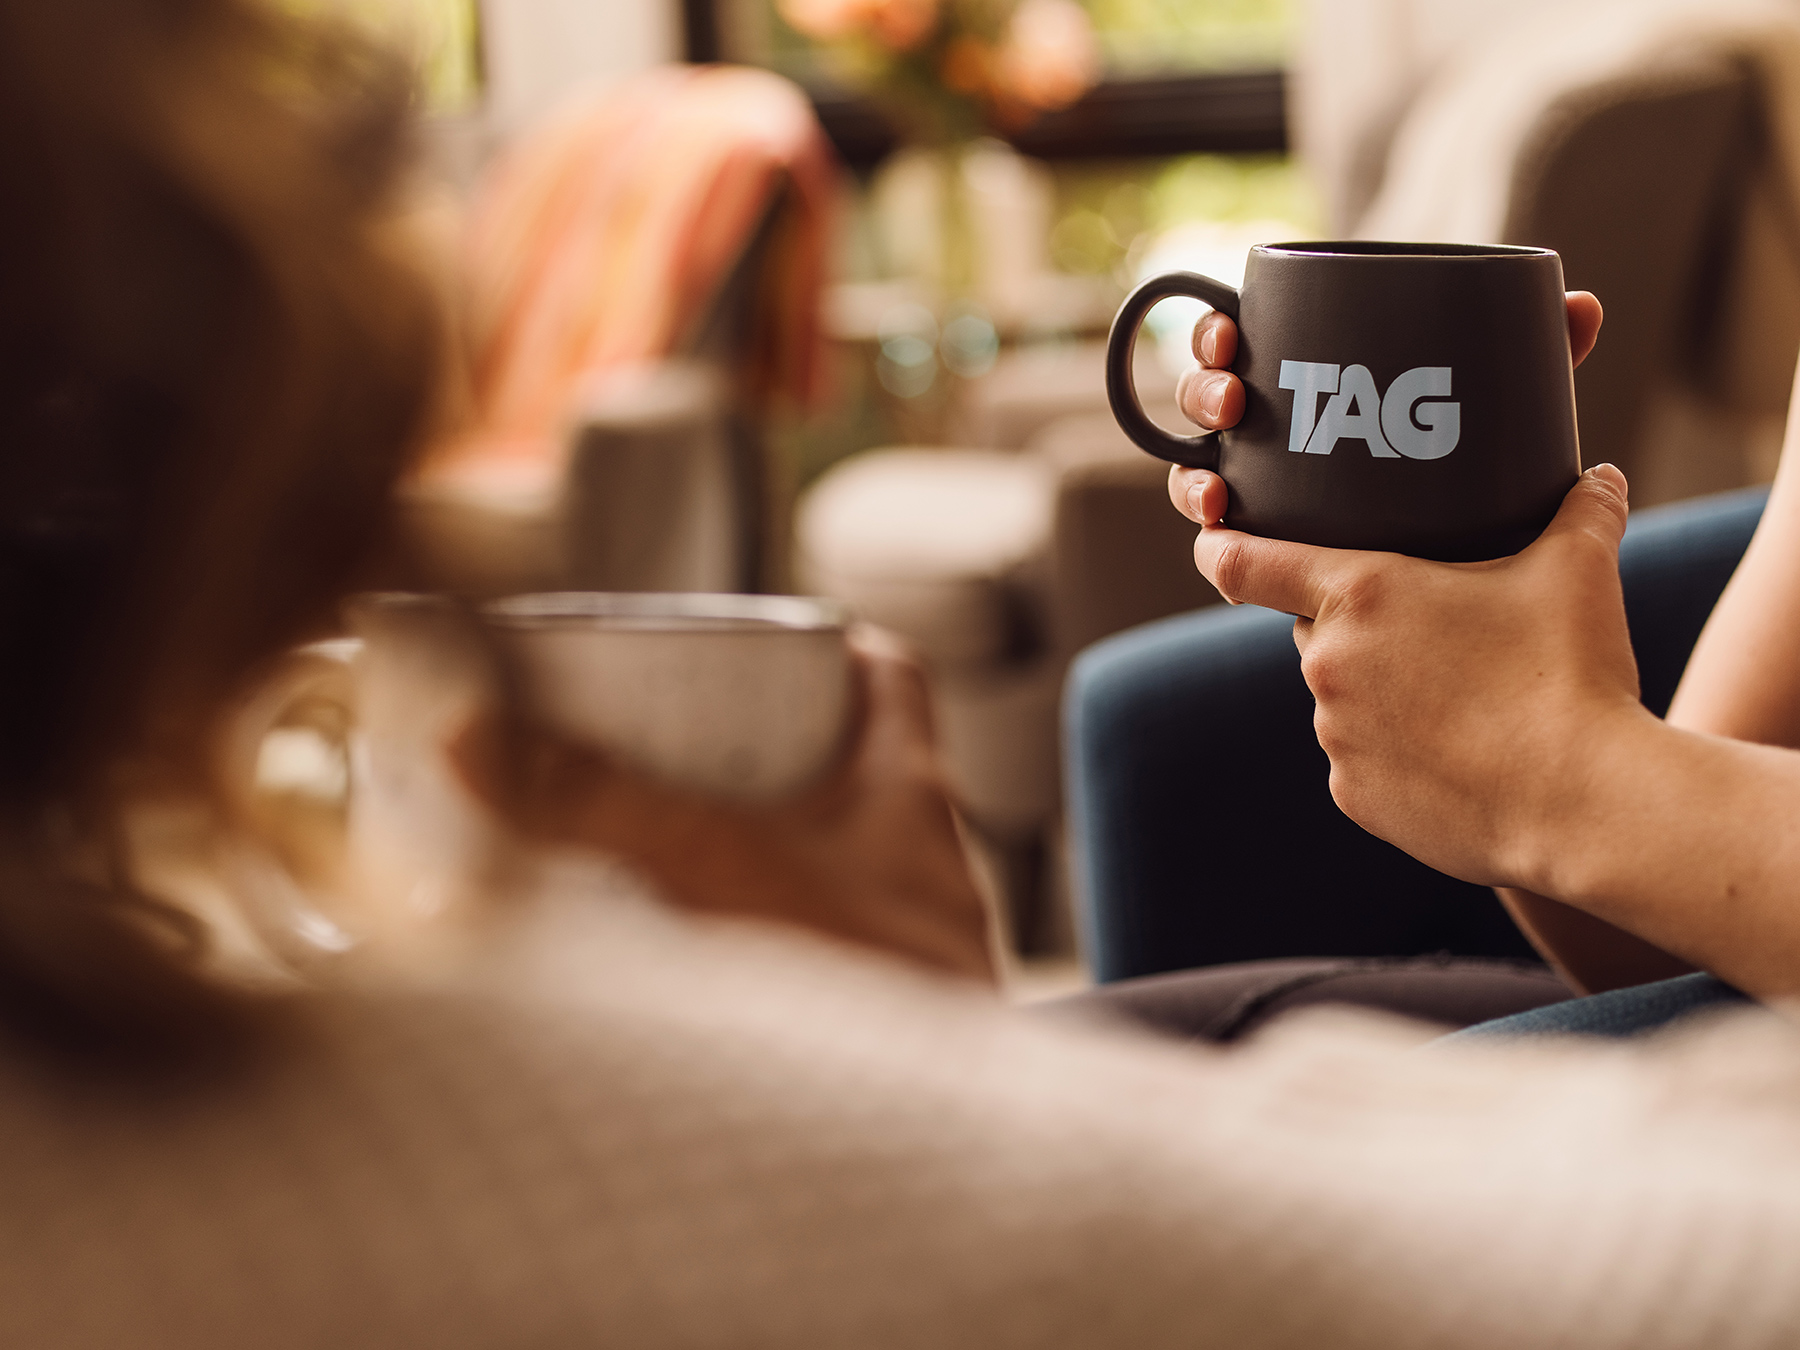 TAG Coffee campaign photographed by advertising and creative lifestyle photographer, Josh Huskin.